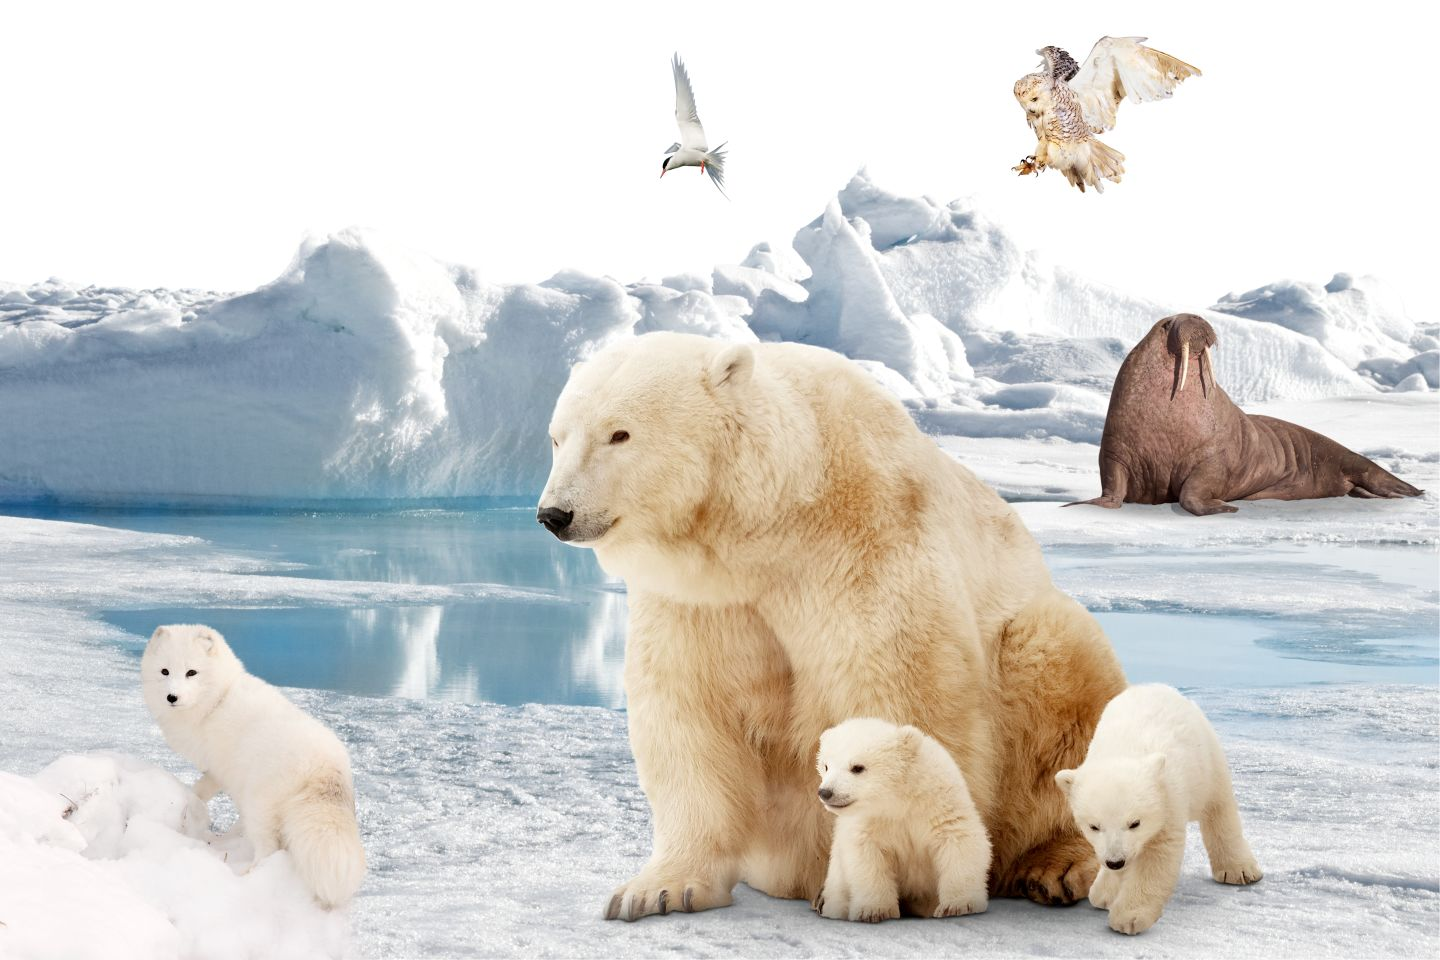 Facts About The Arctic | Animals In The Arctic | DK Find Out